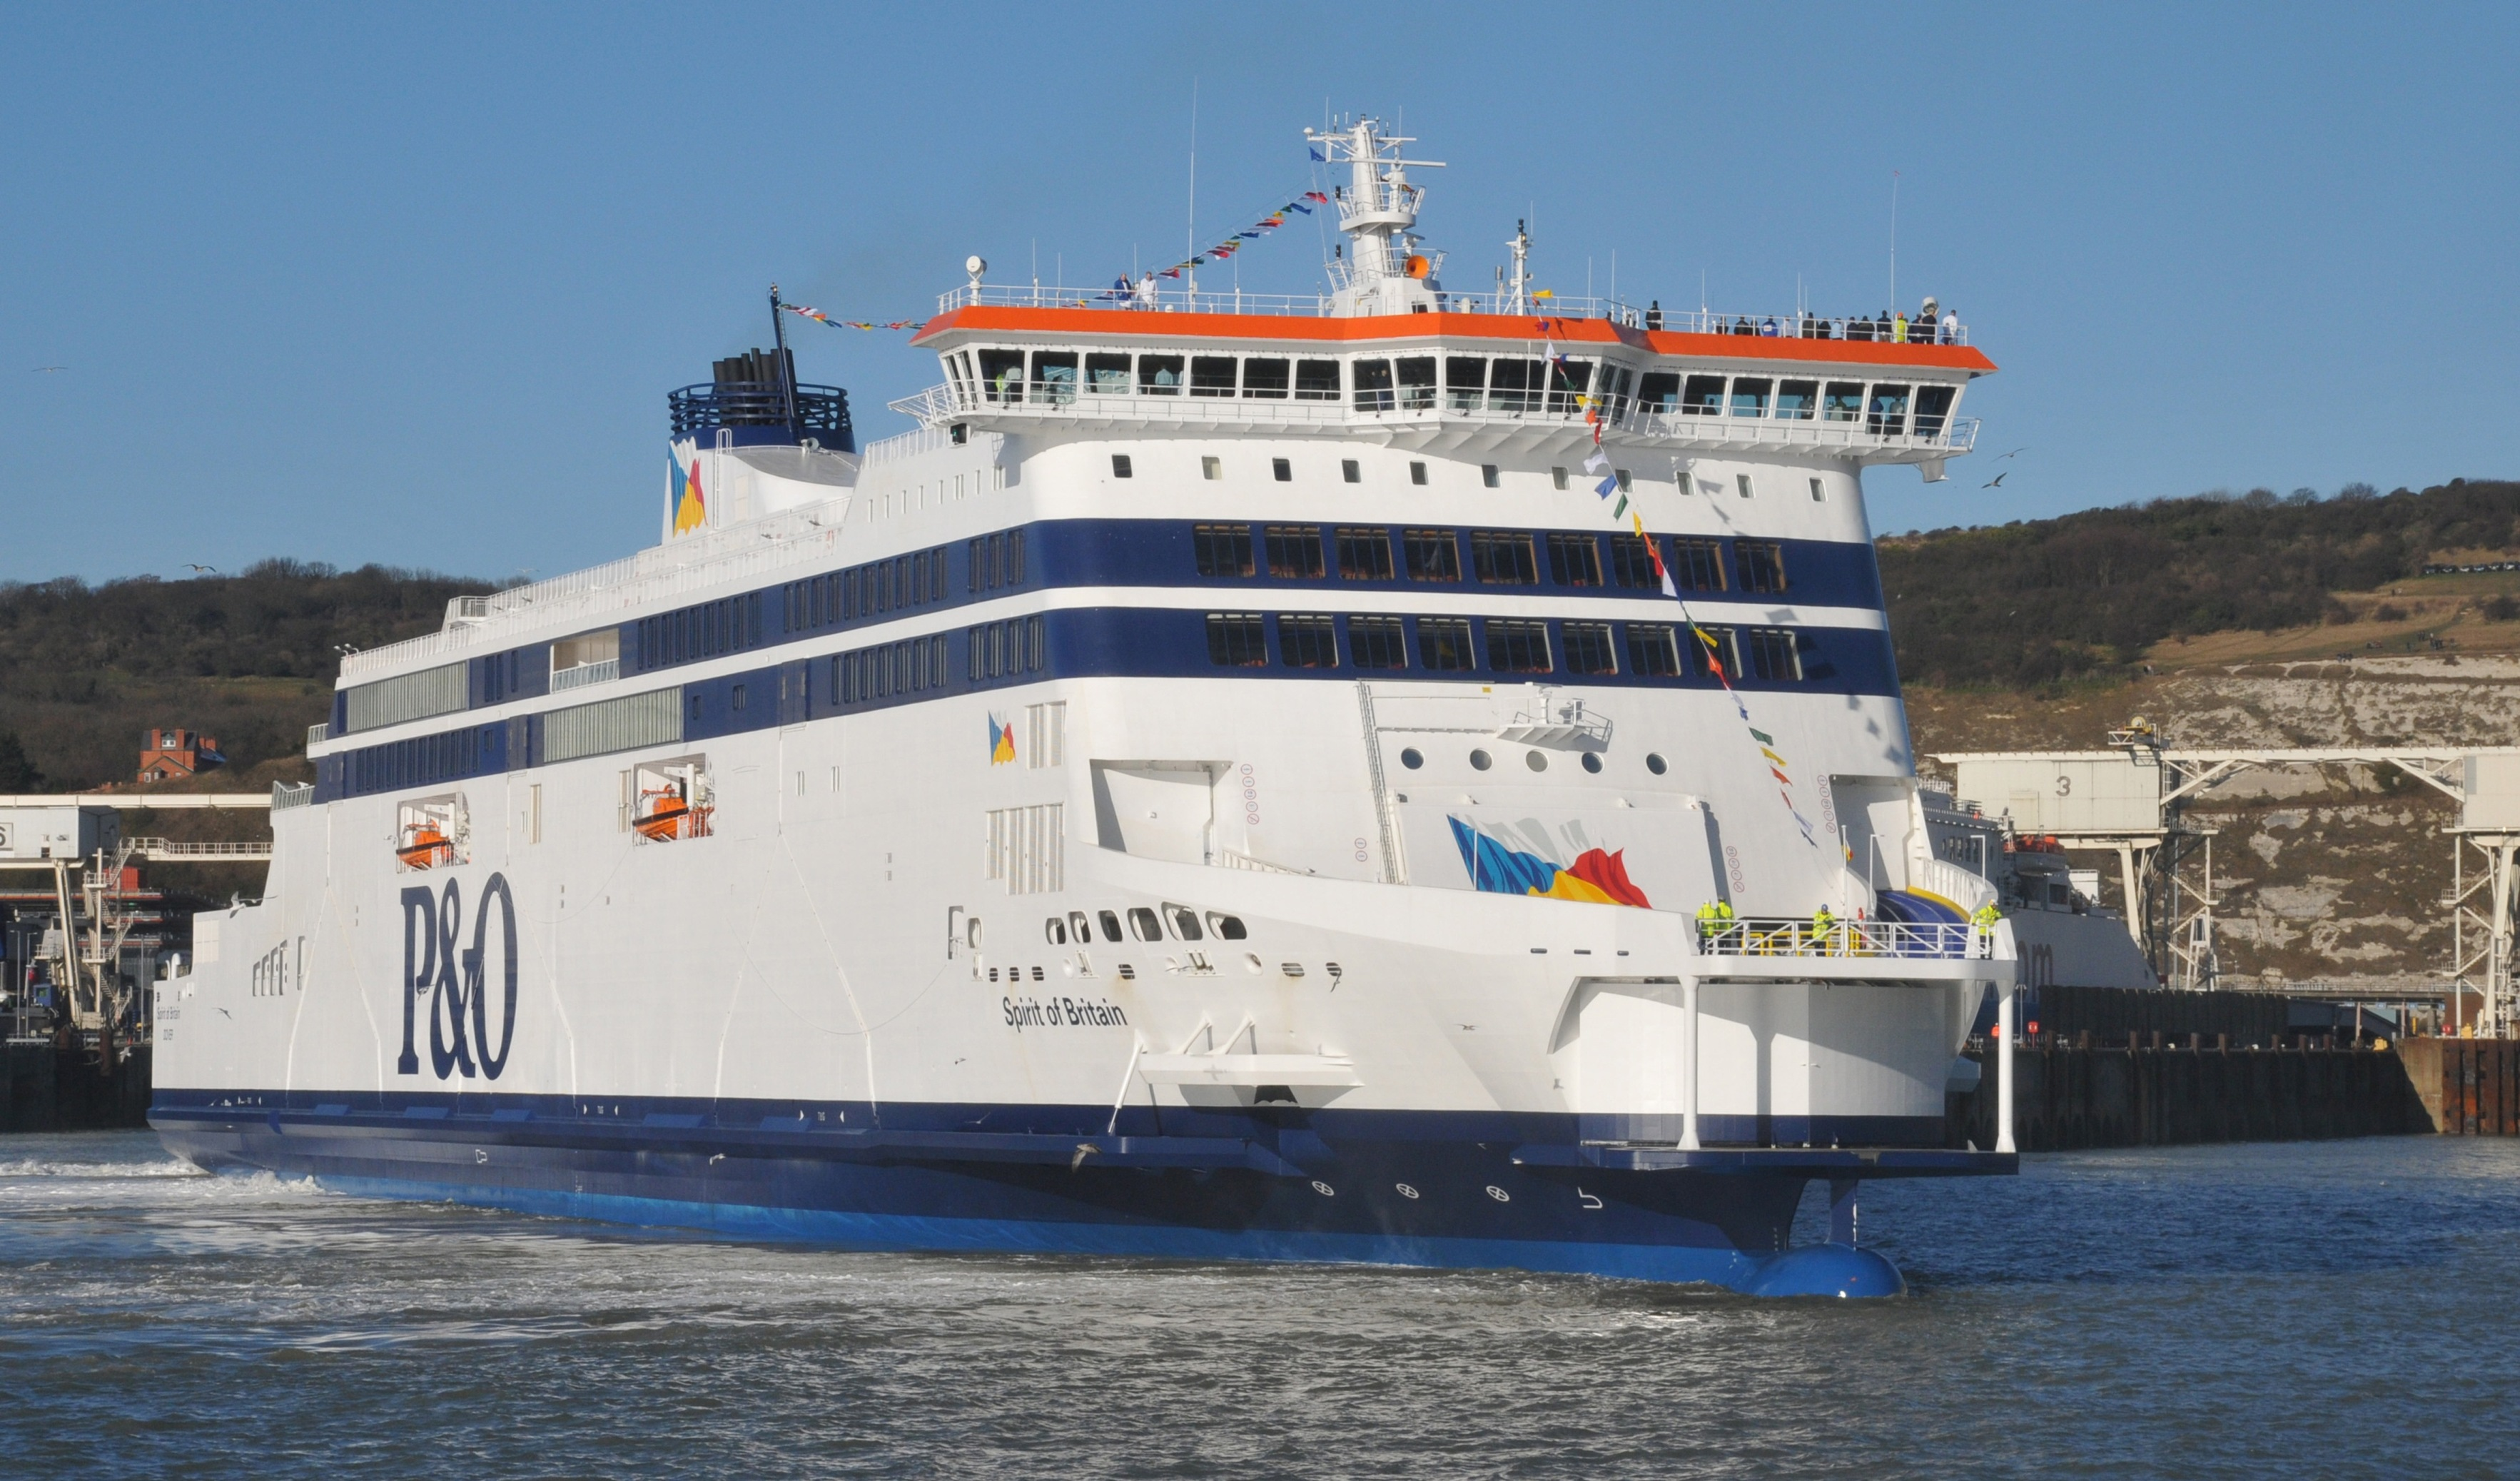 COMPETITION: Twelve return P&O Ferries Dover/Calais passages to be won